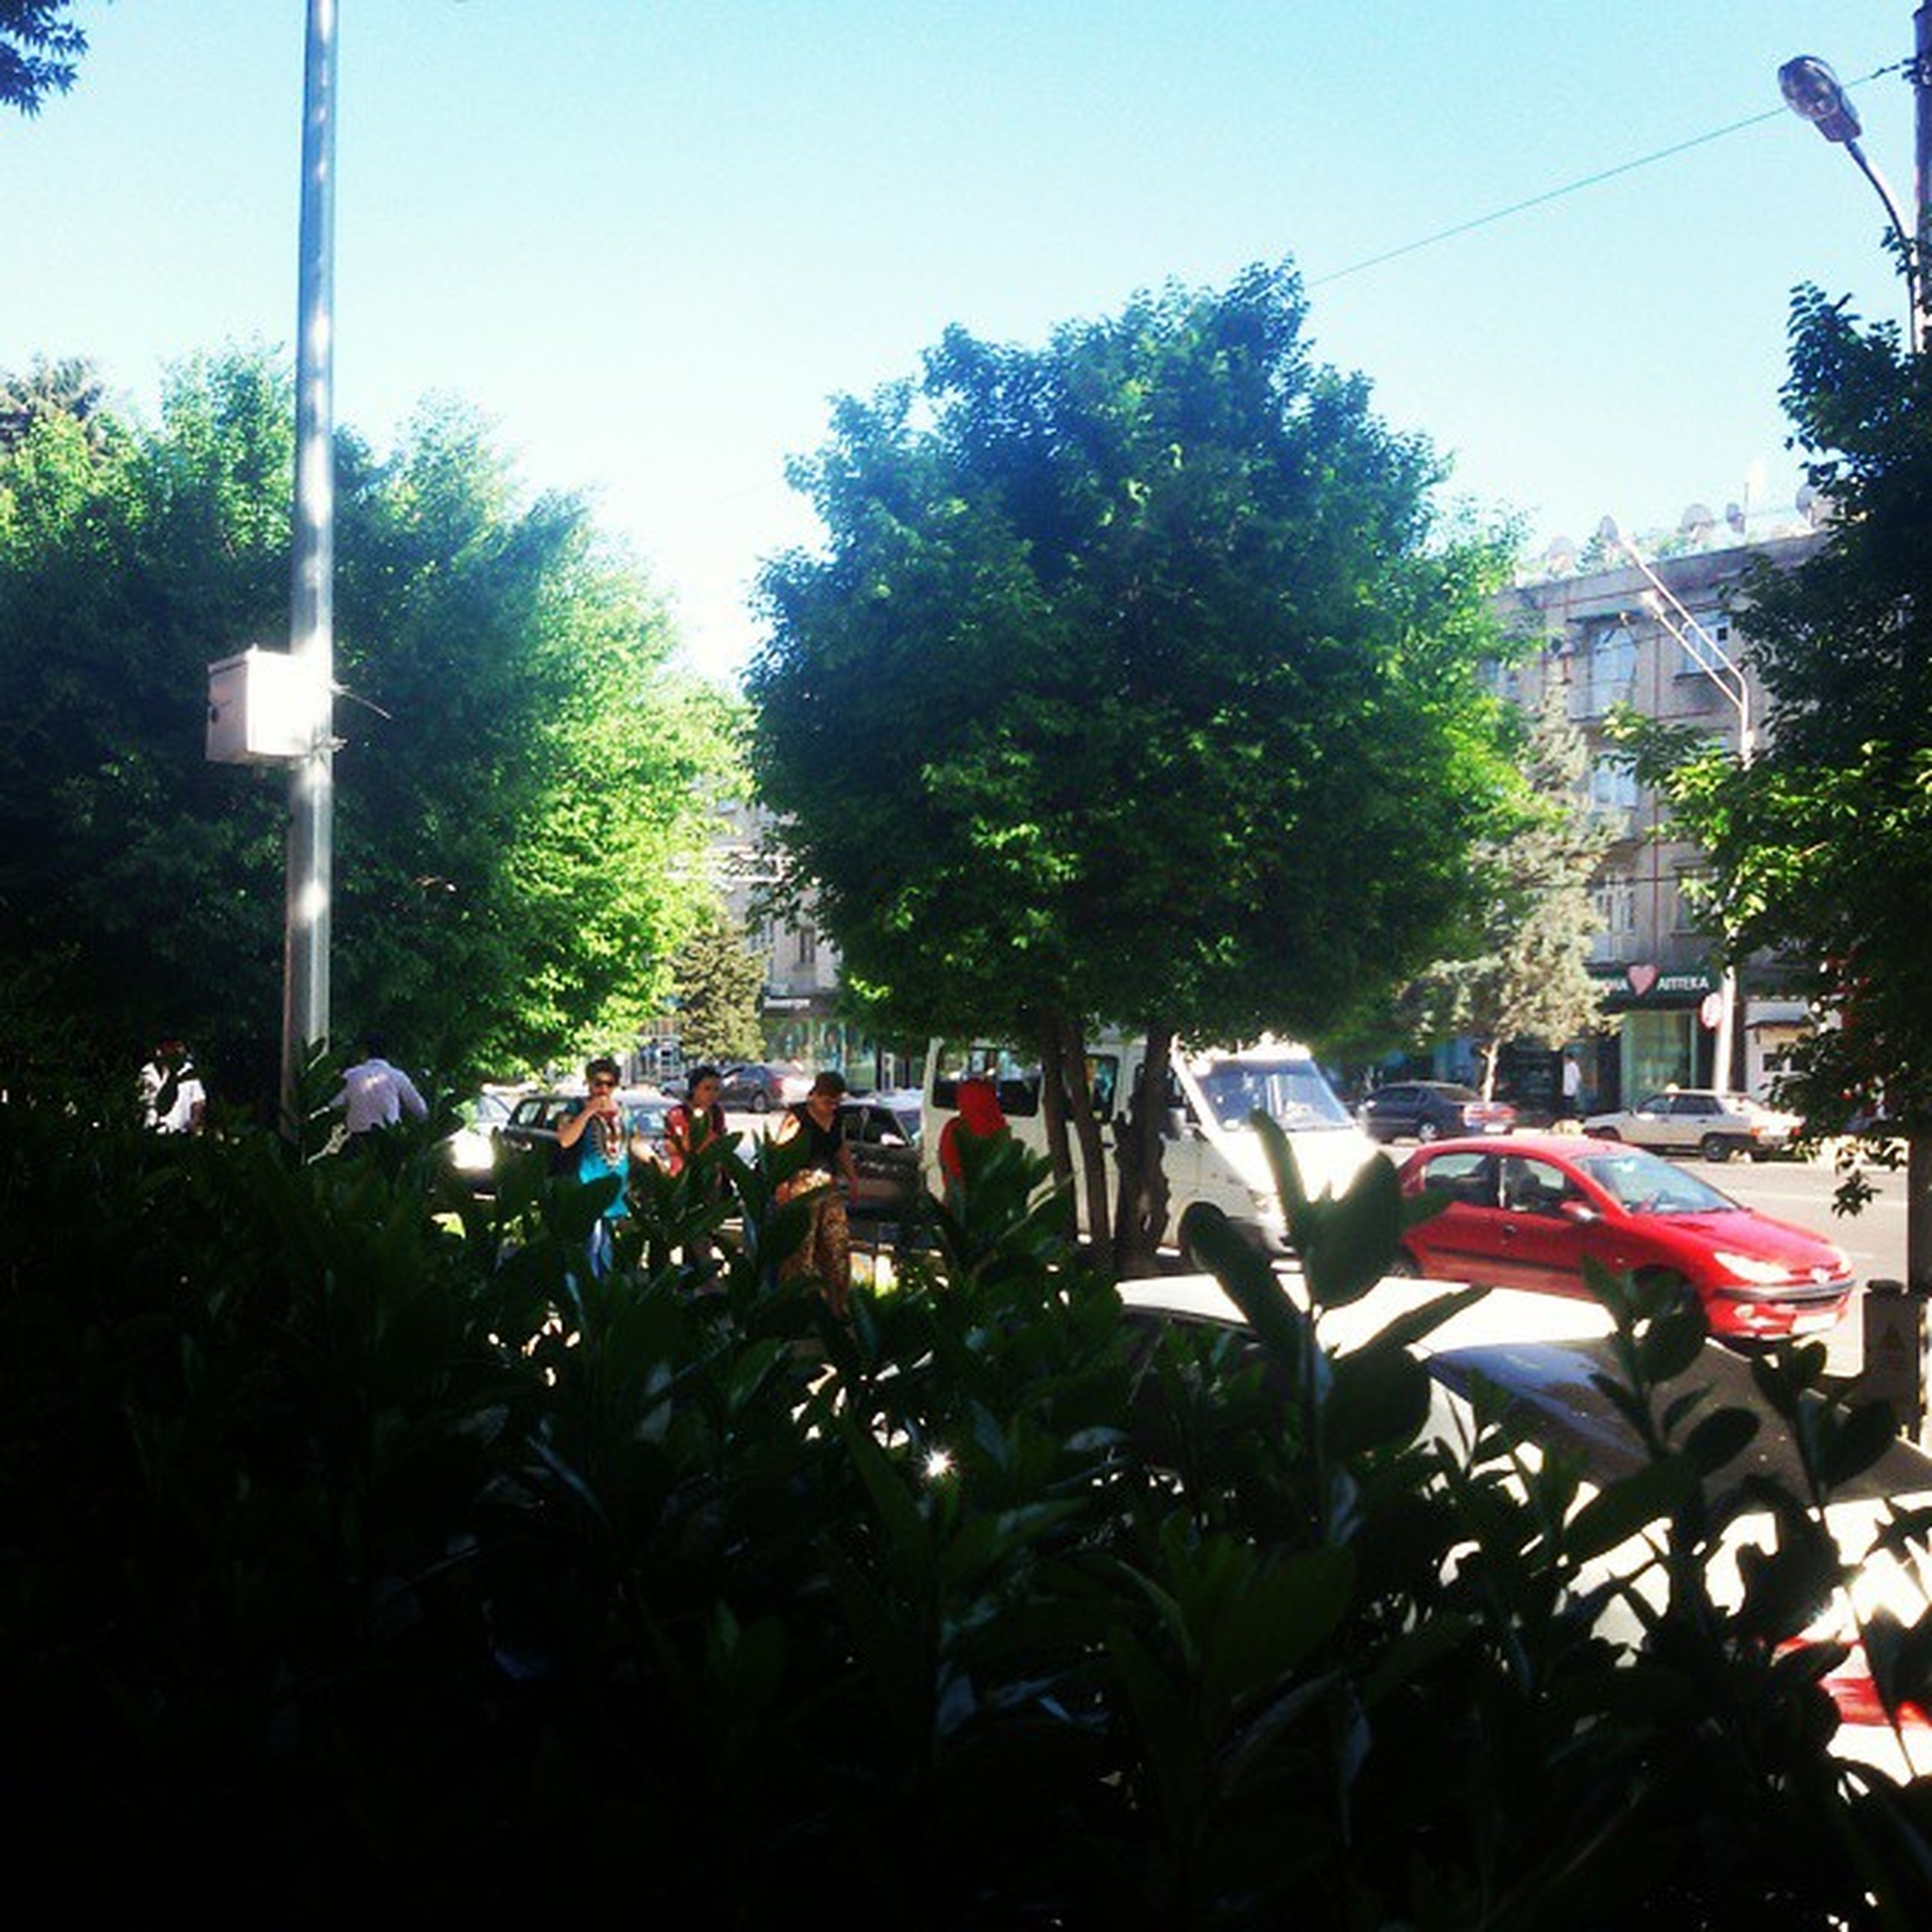 tree, clear sky, large group of people, transportation, land vehicle, men, mode of transport, car, growth, person, street, lifestyles, sunlight, leisure activity, sky, plant, outdoors, day, city